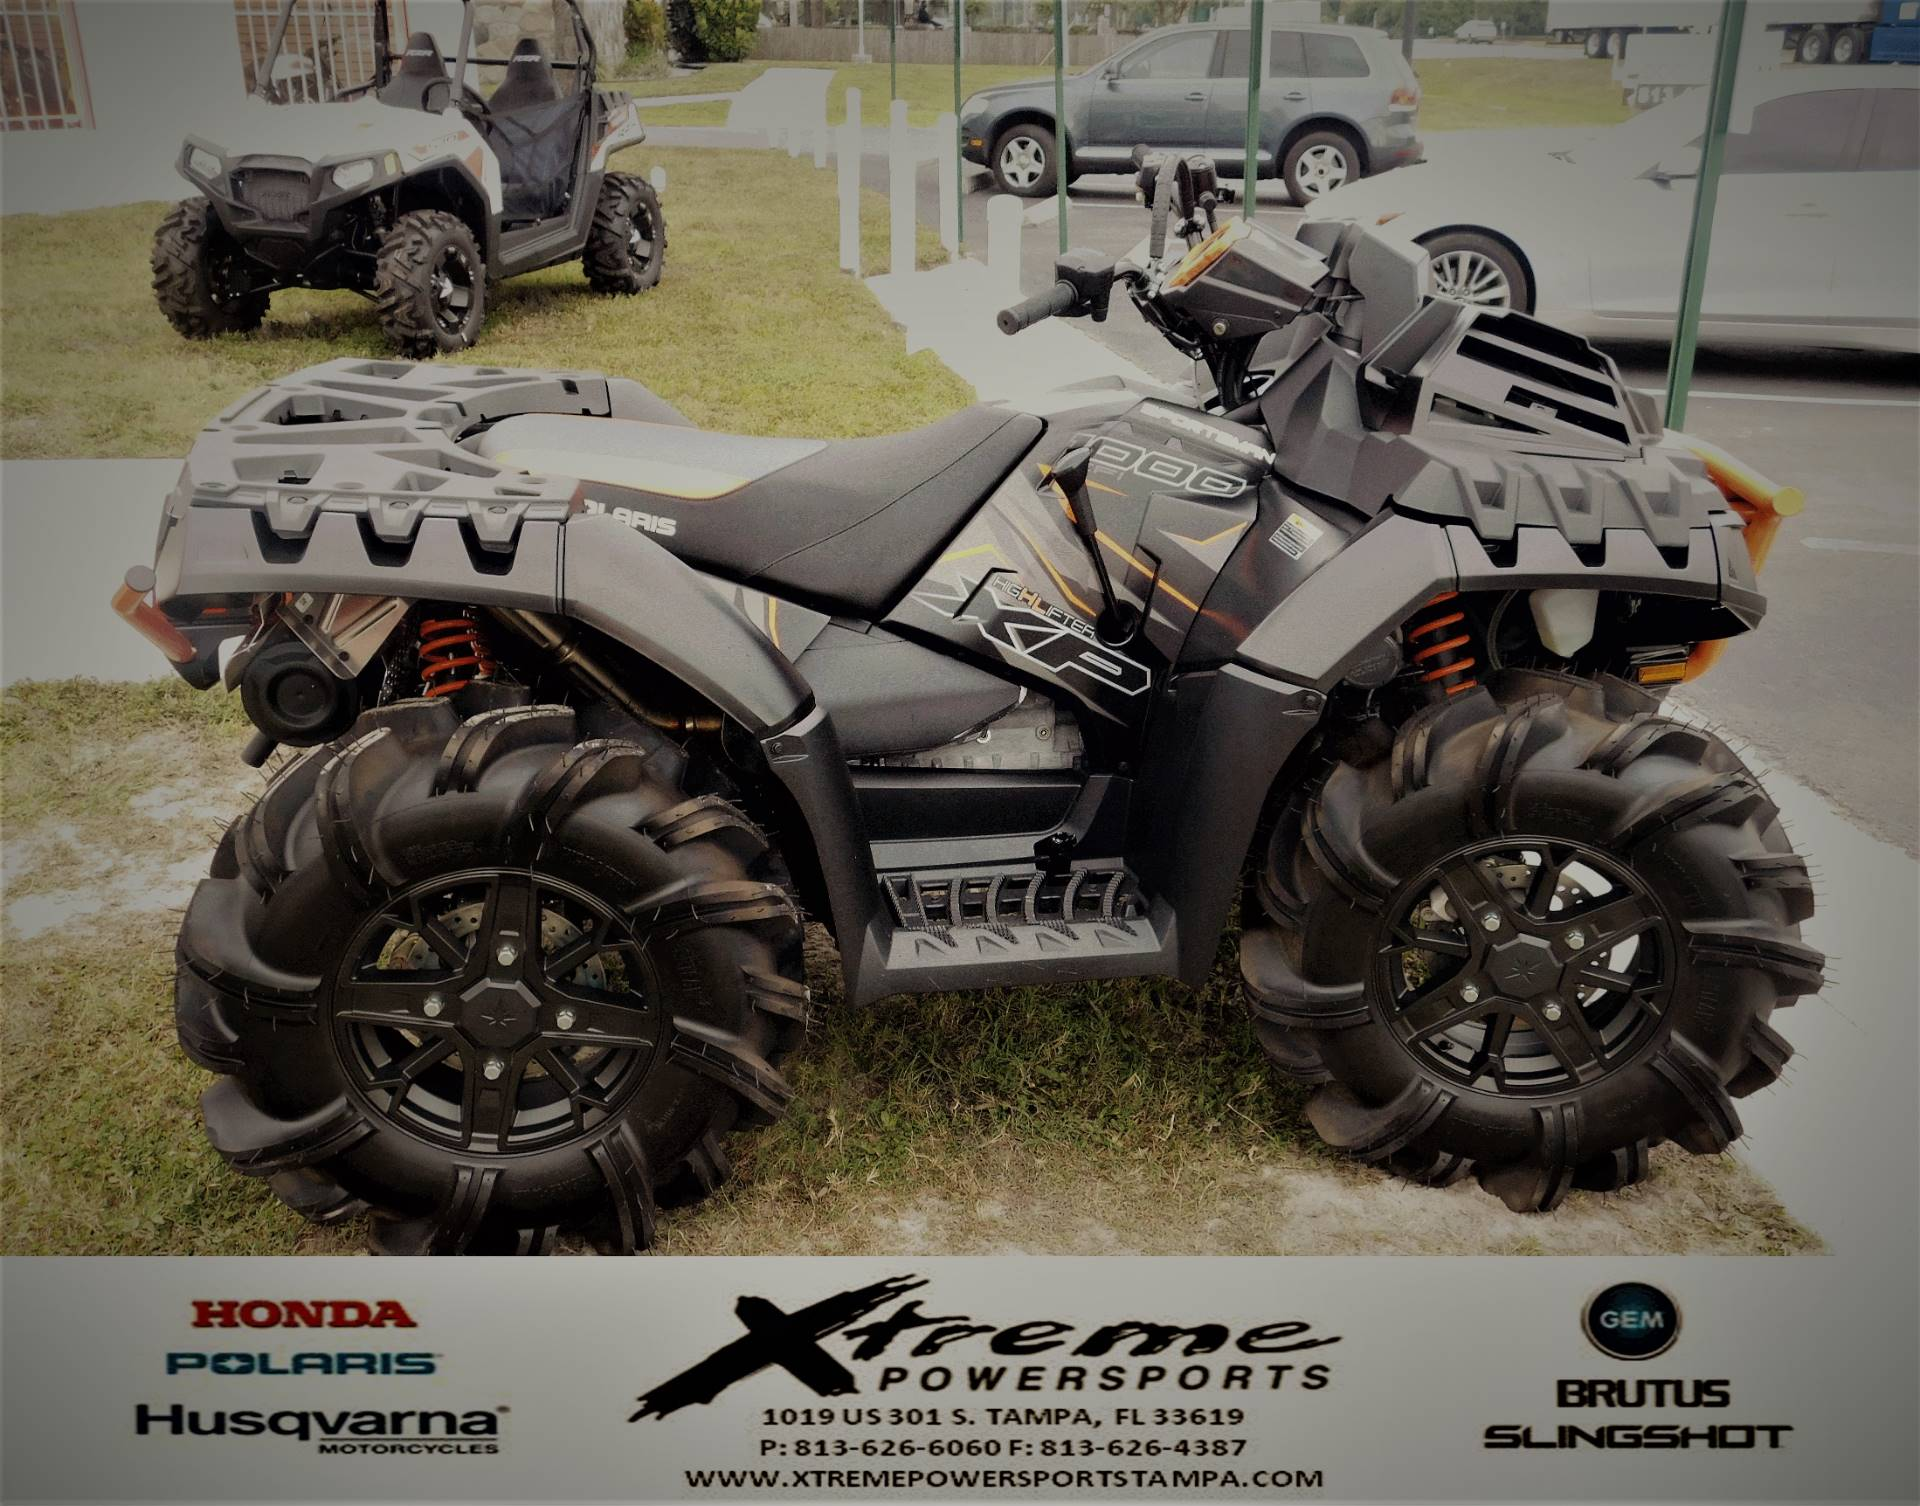 2019 Polaris SPORTSMAN XP1000 HIGHLIFTER in Tampa, Florida